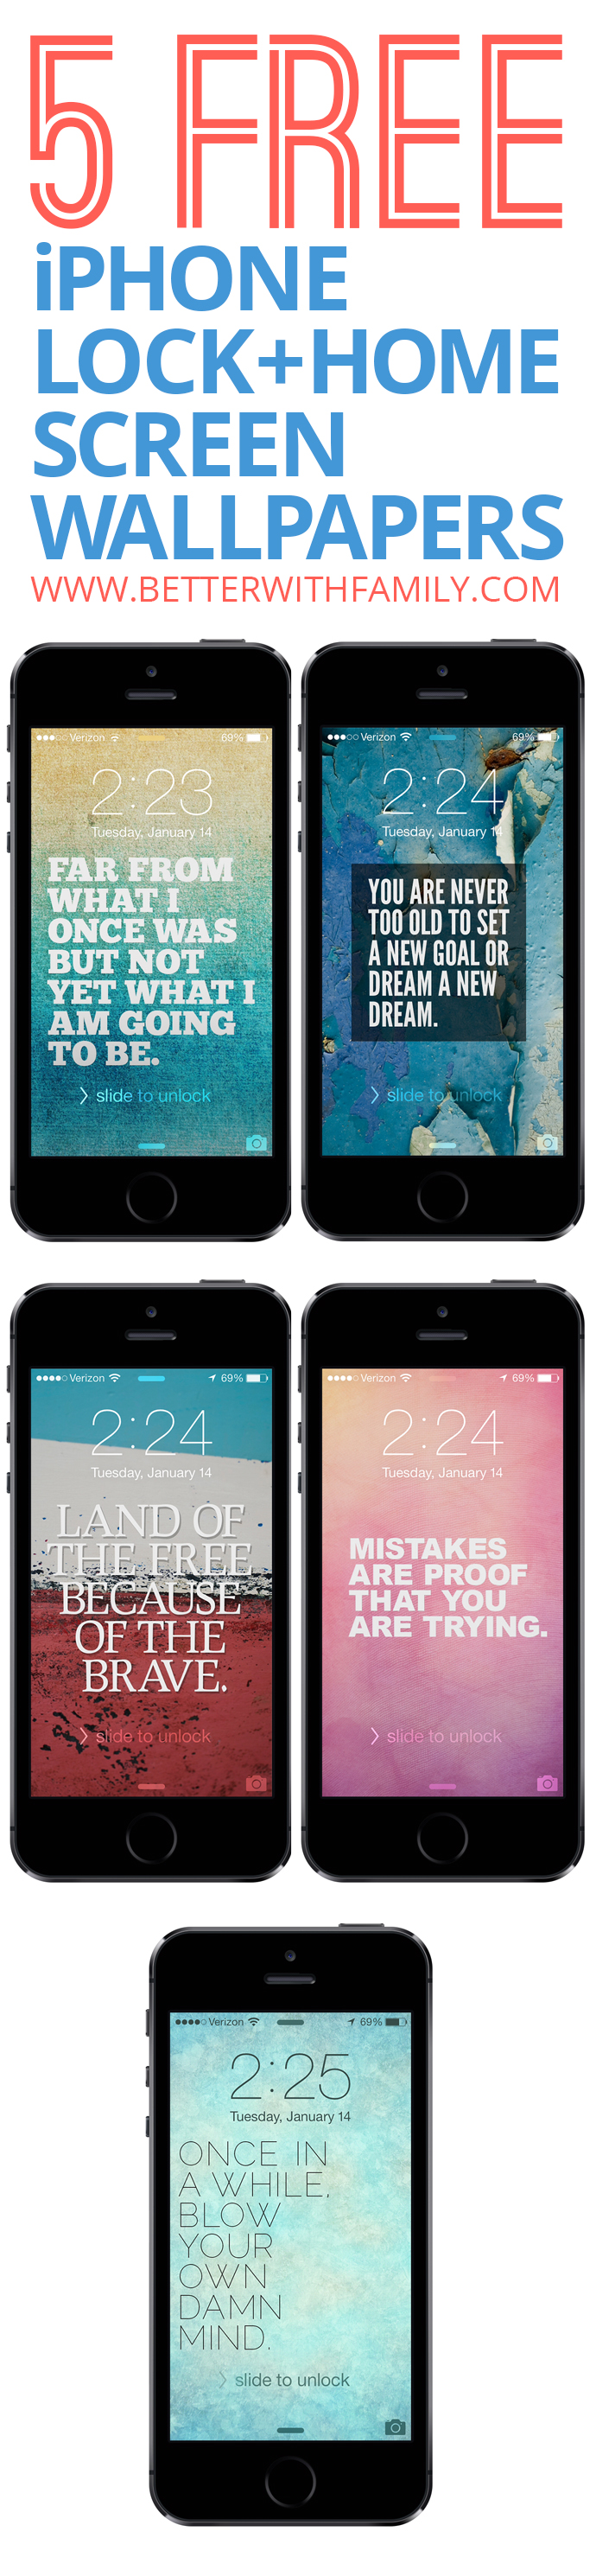 5 Free iPhone Lock / Home Screen Wallapapers - Better with Family (www.betterwithfamily.com)